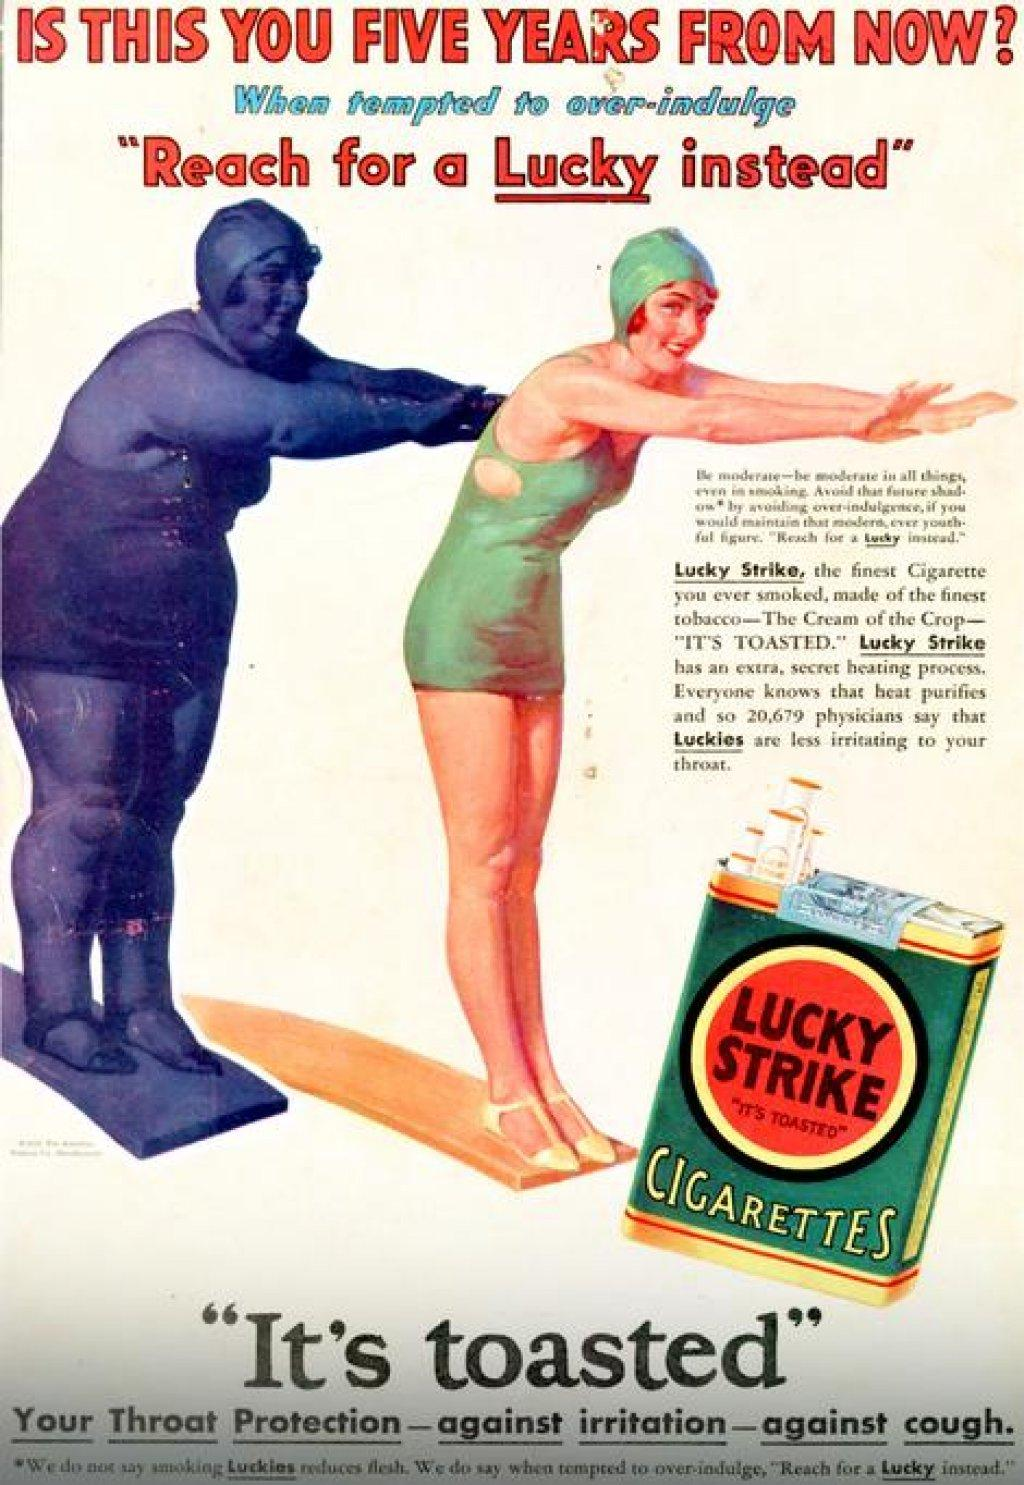 Weight Loss Adverts : weight, adverts, These, Old-fashioned, Weight, Prove, We've, Always, Wanted, Quick, Fix…, 'washes, Away', Slimming, Pills, TAPEWORMS